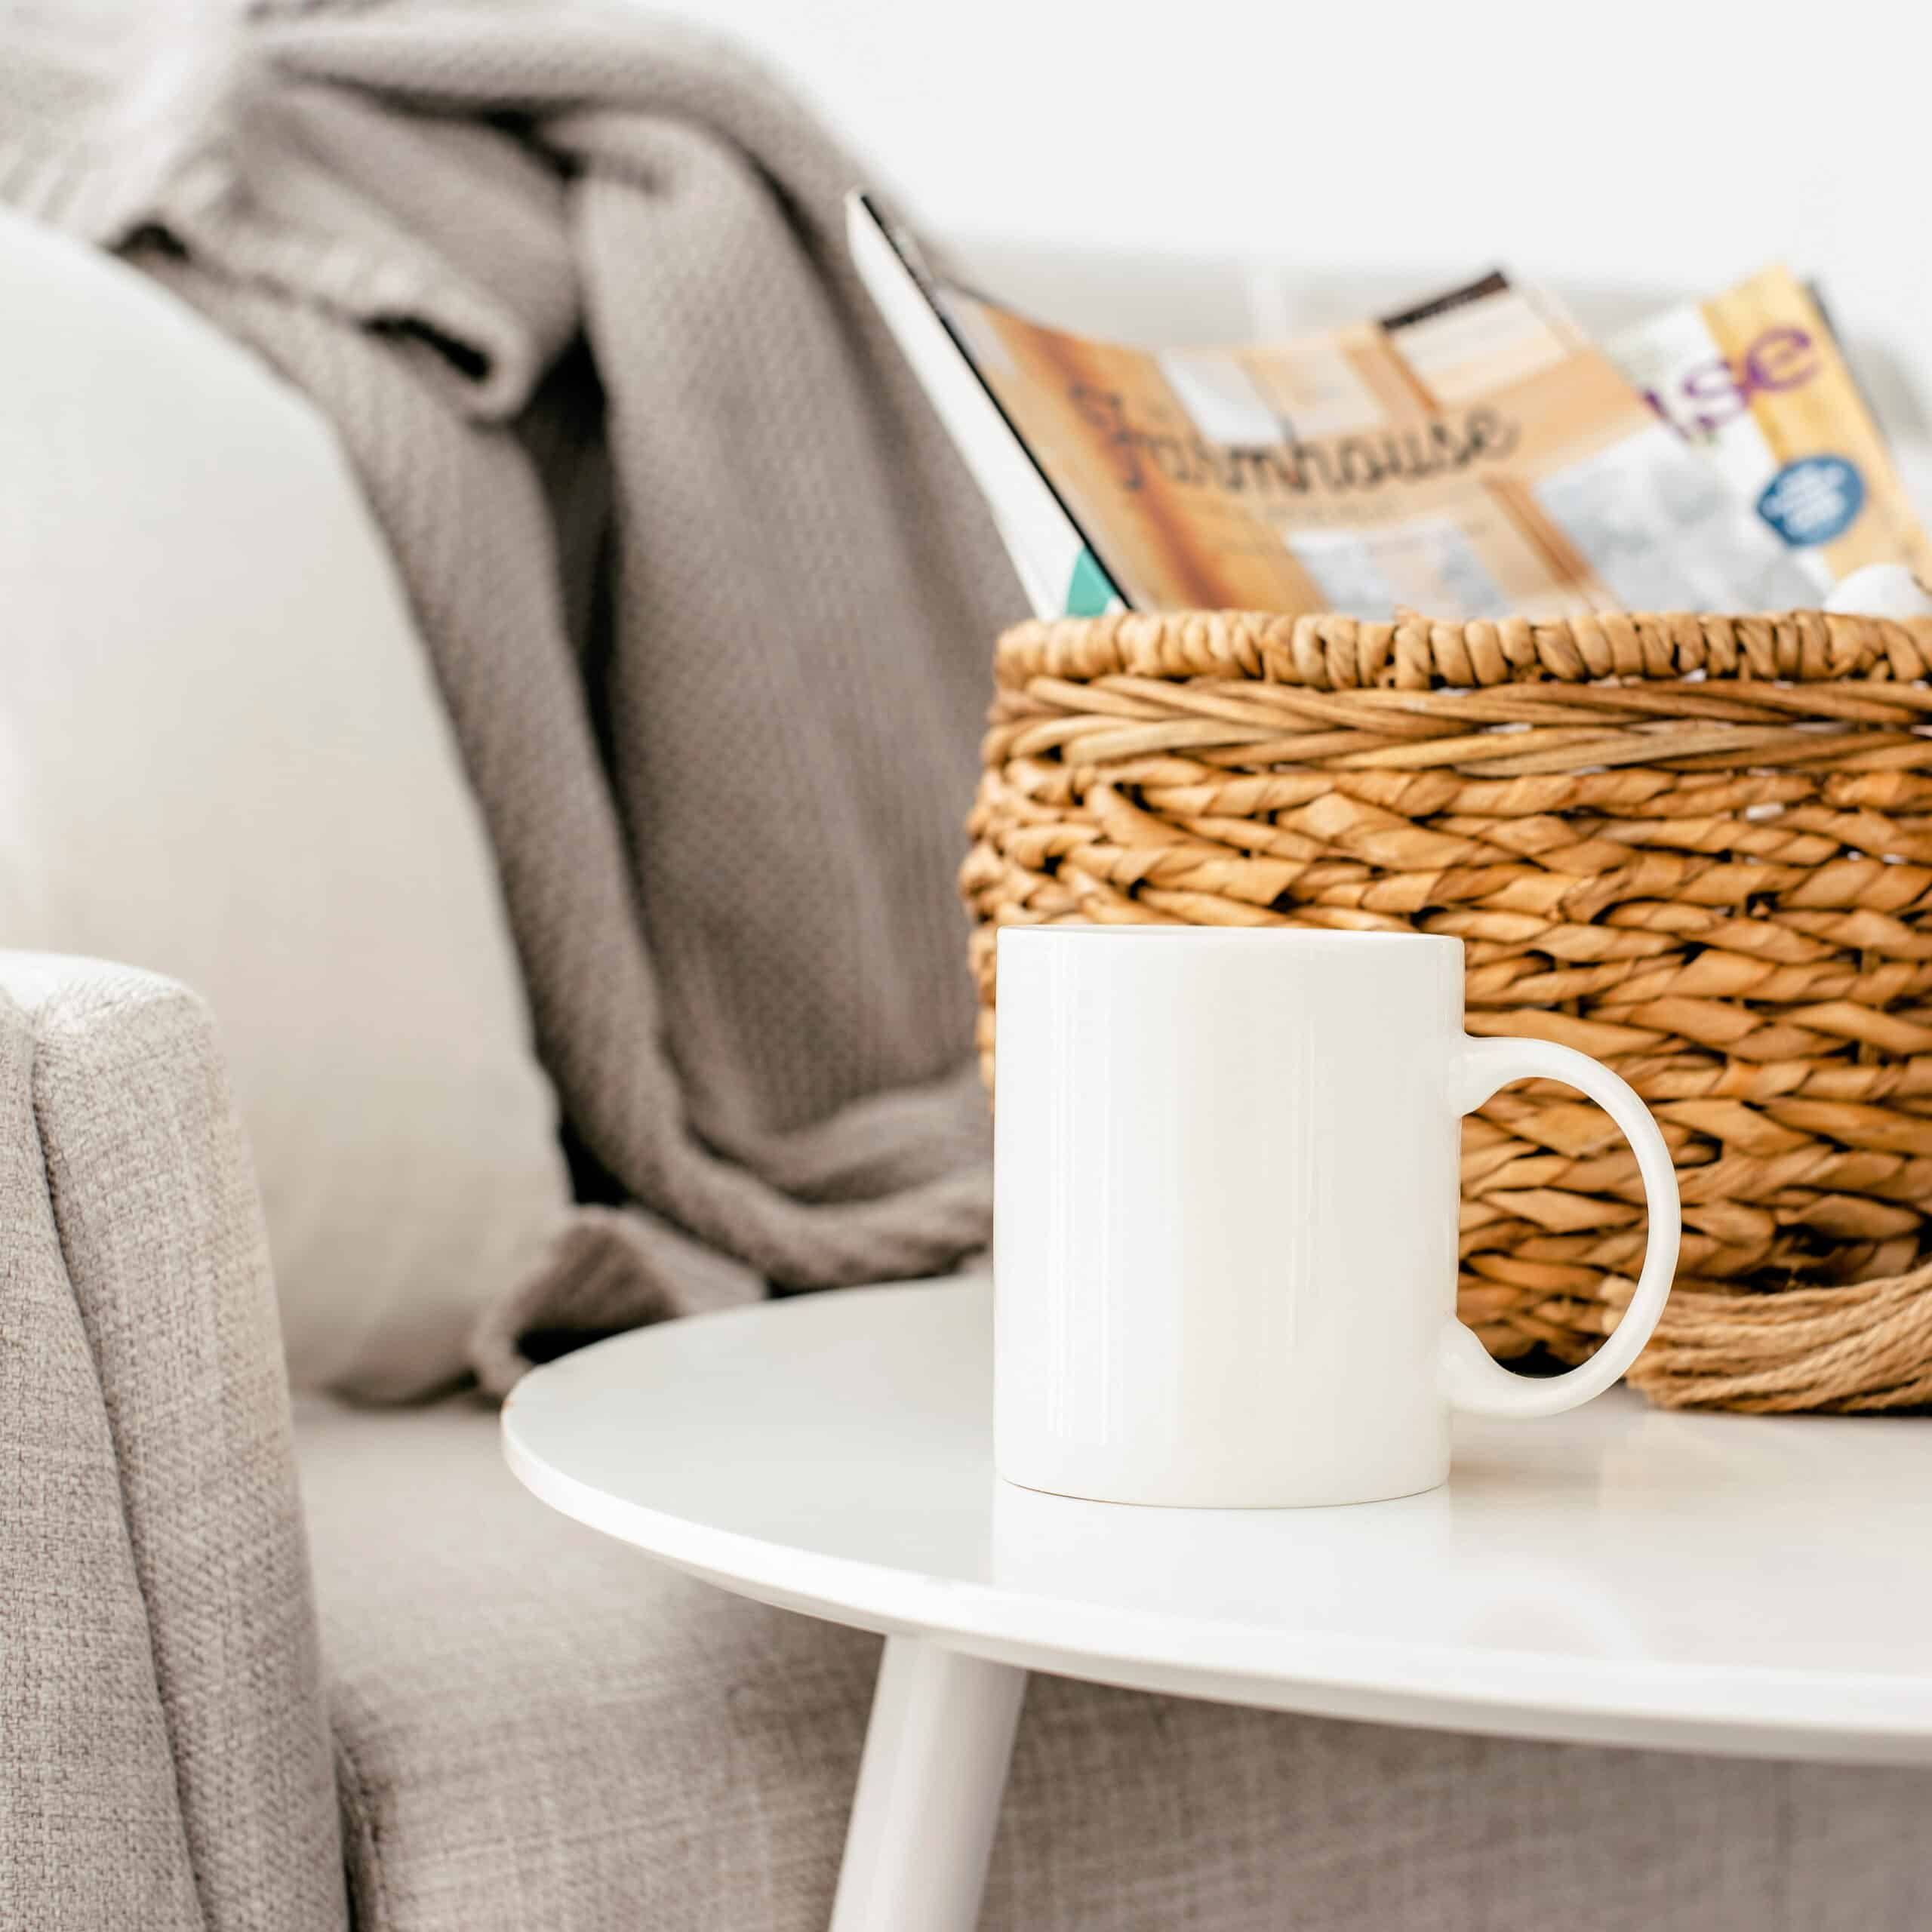 cozy living room with a couch, small table, basket of magazines, and a coffee cup